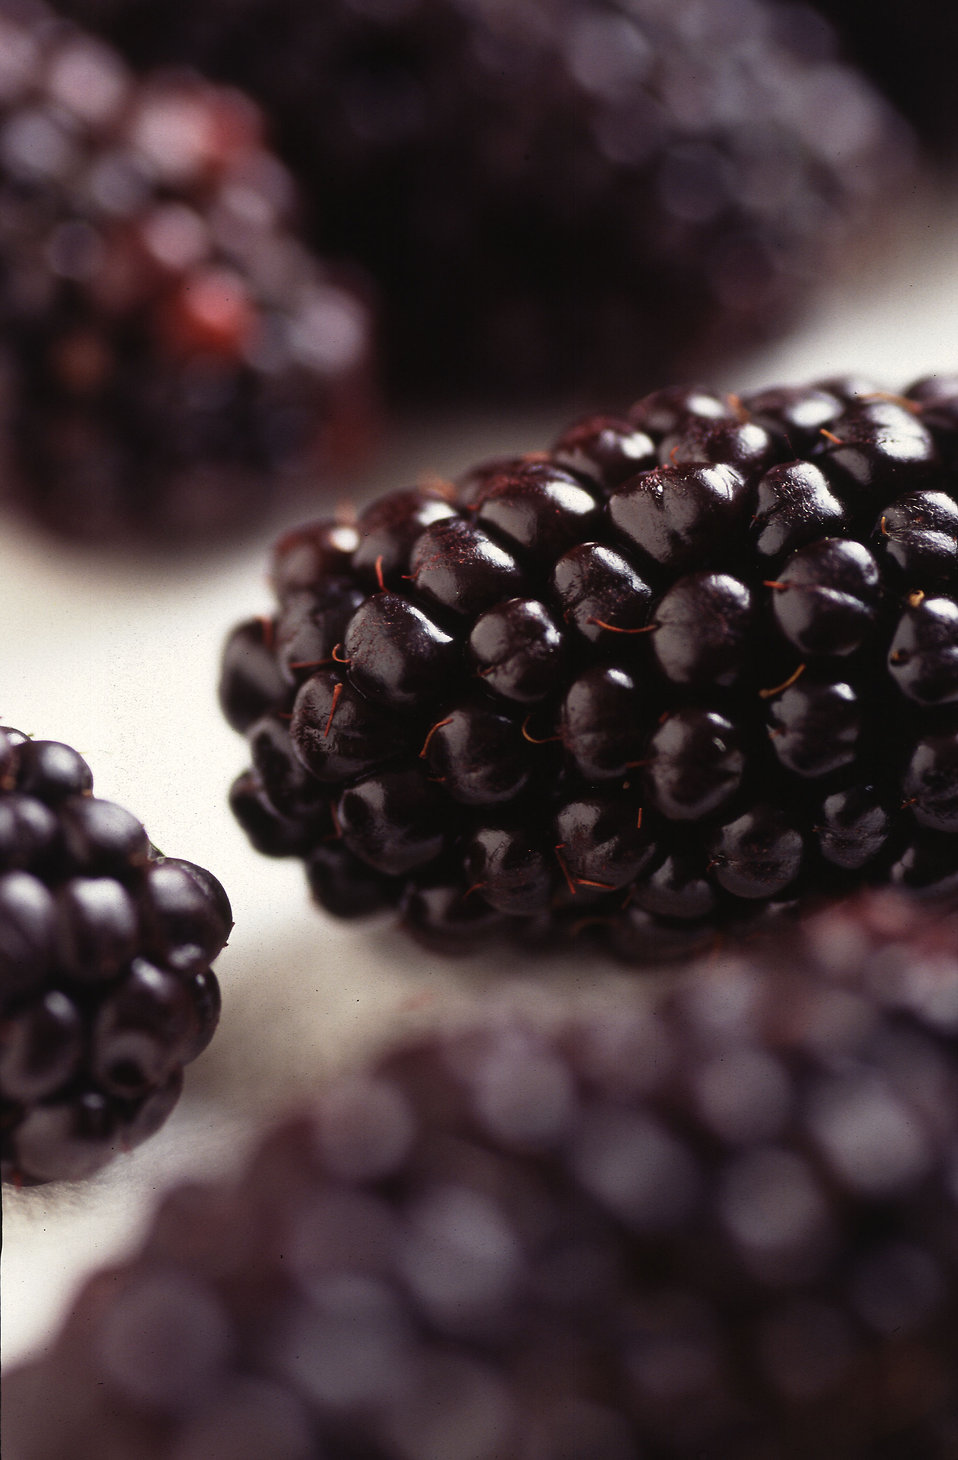 Closeup of blackberries : Free Stock Photo